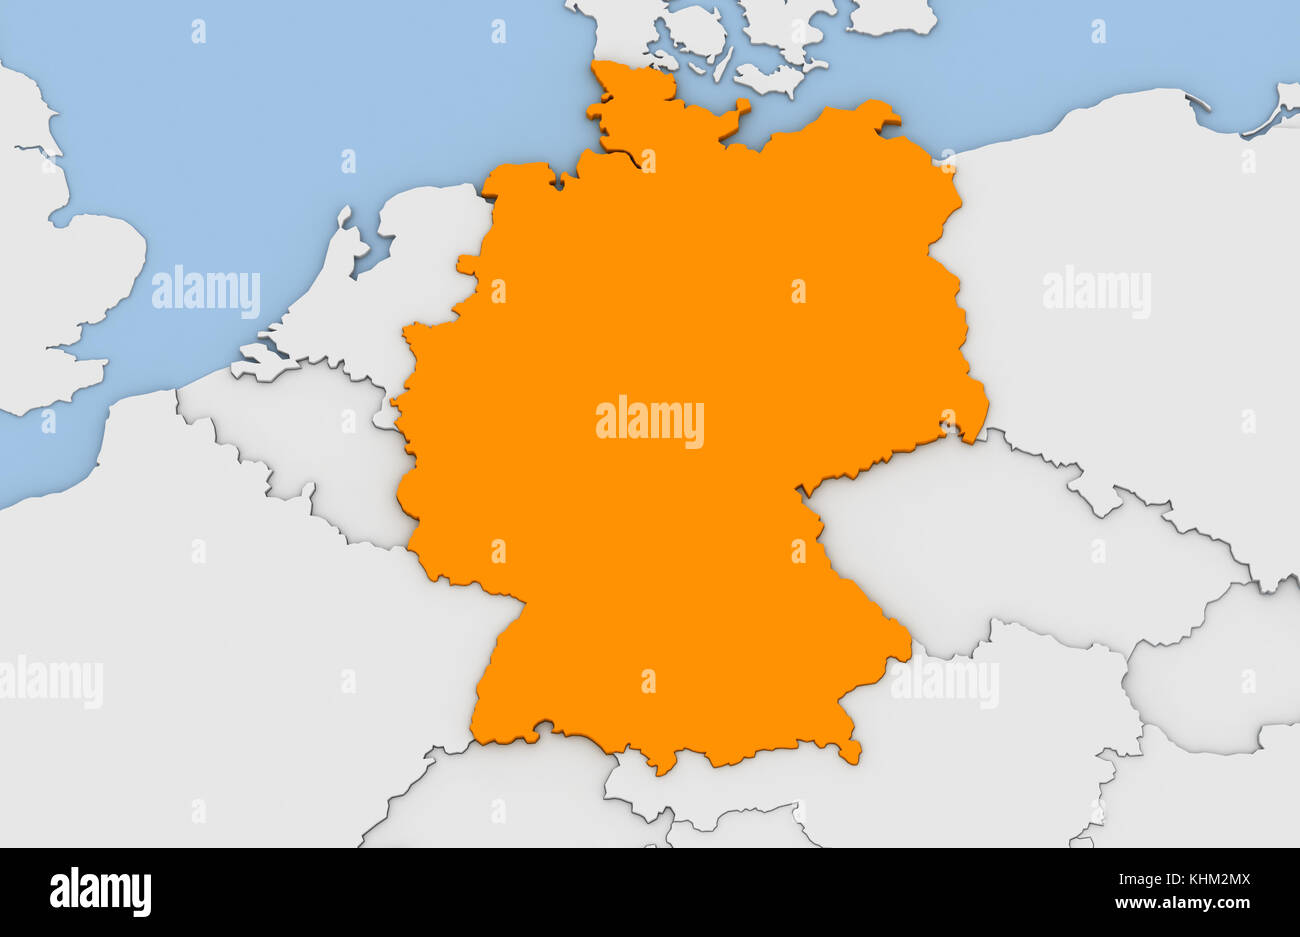 3d render of abstract map of germany highlighted in orange color 3d render of abstract map of germany highlighted in orange color gumiabroncs Image collections